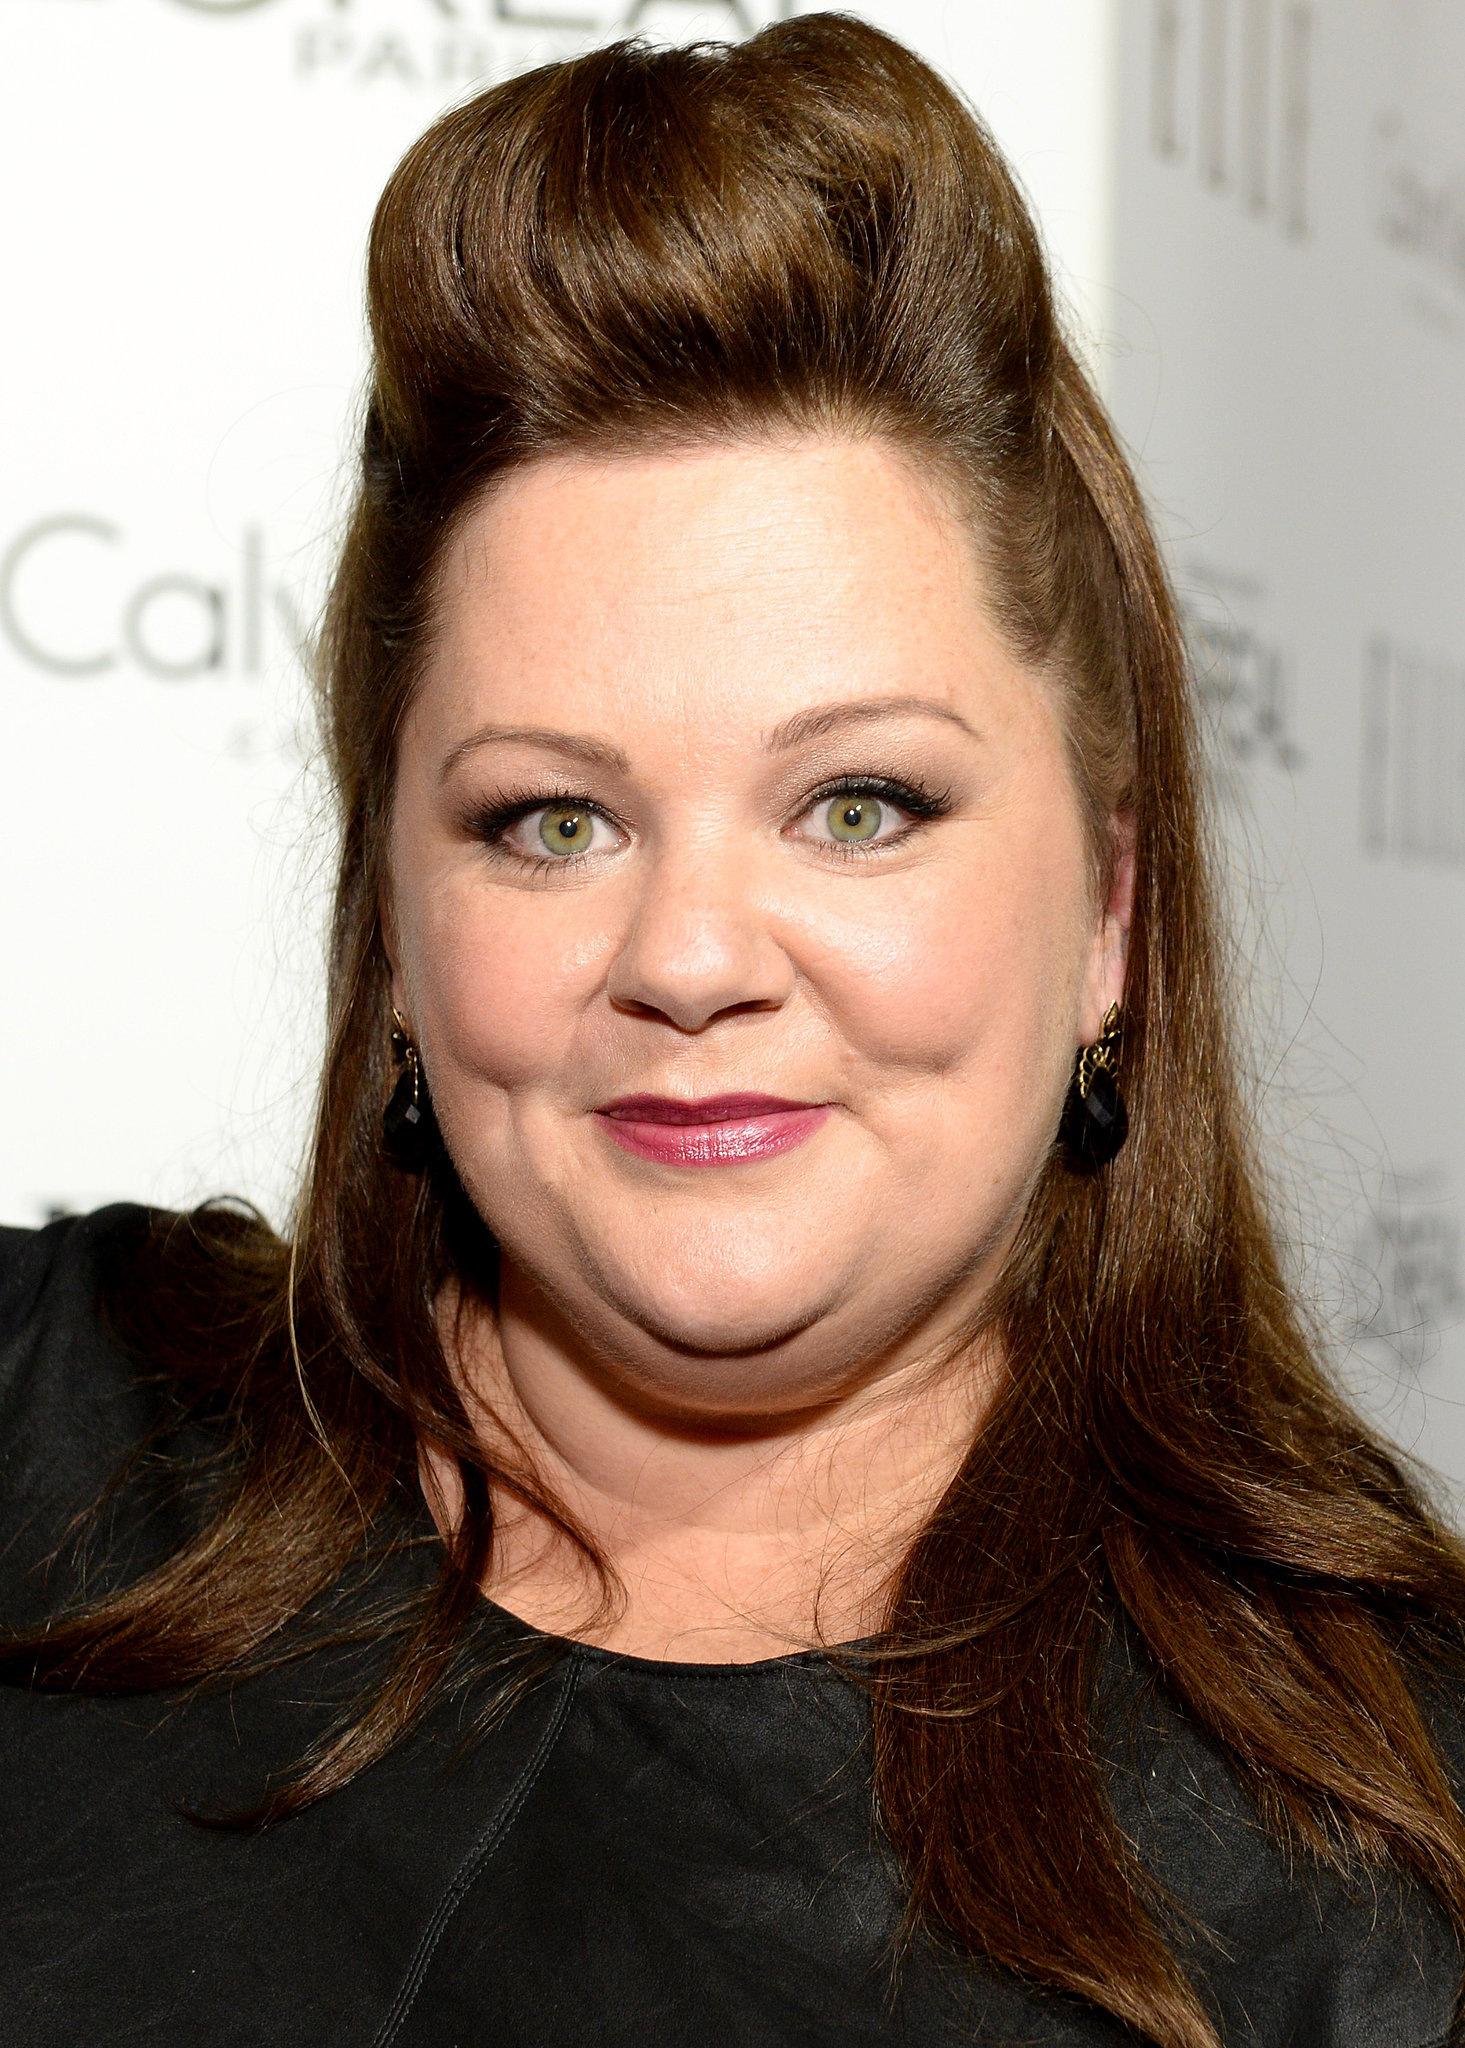 Melissa McCarthy went above and beyond with her half-up pompadour hairstyle. Her cinnamon lipstick was merely icing on the cake.